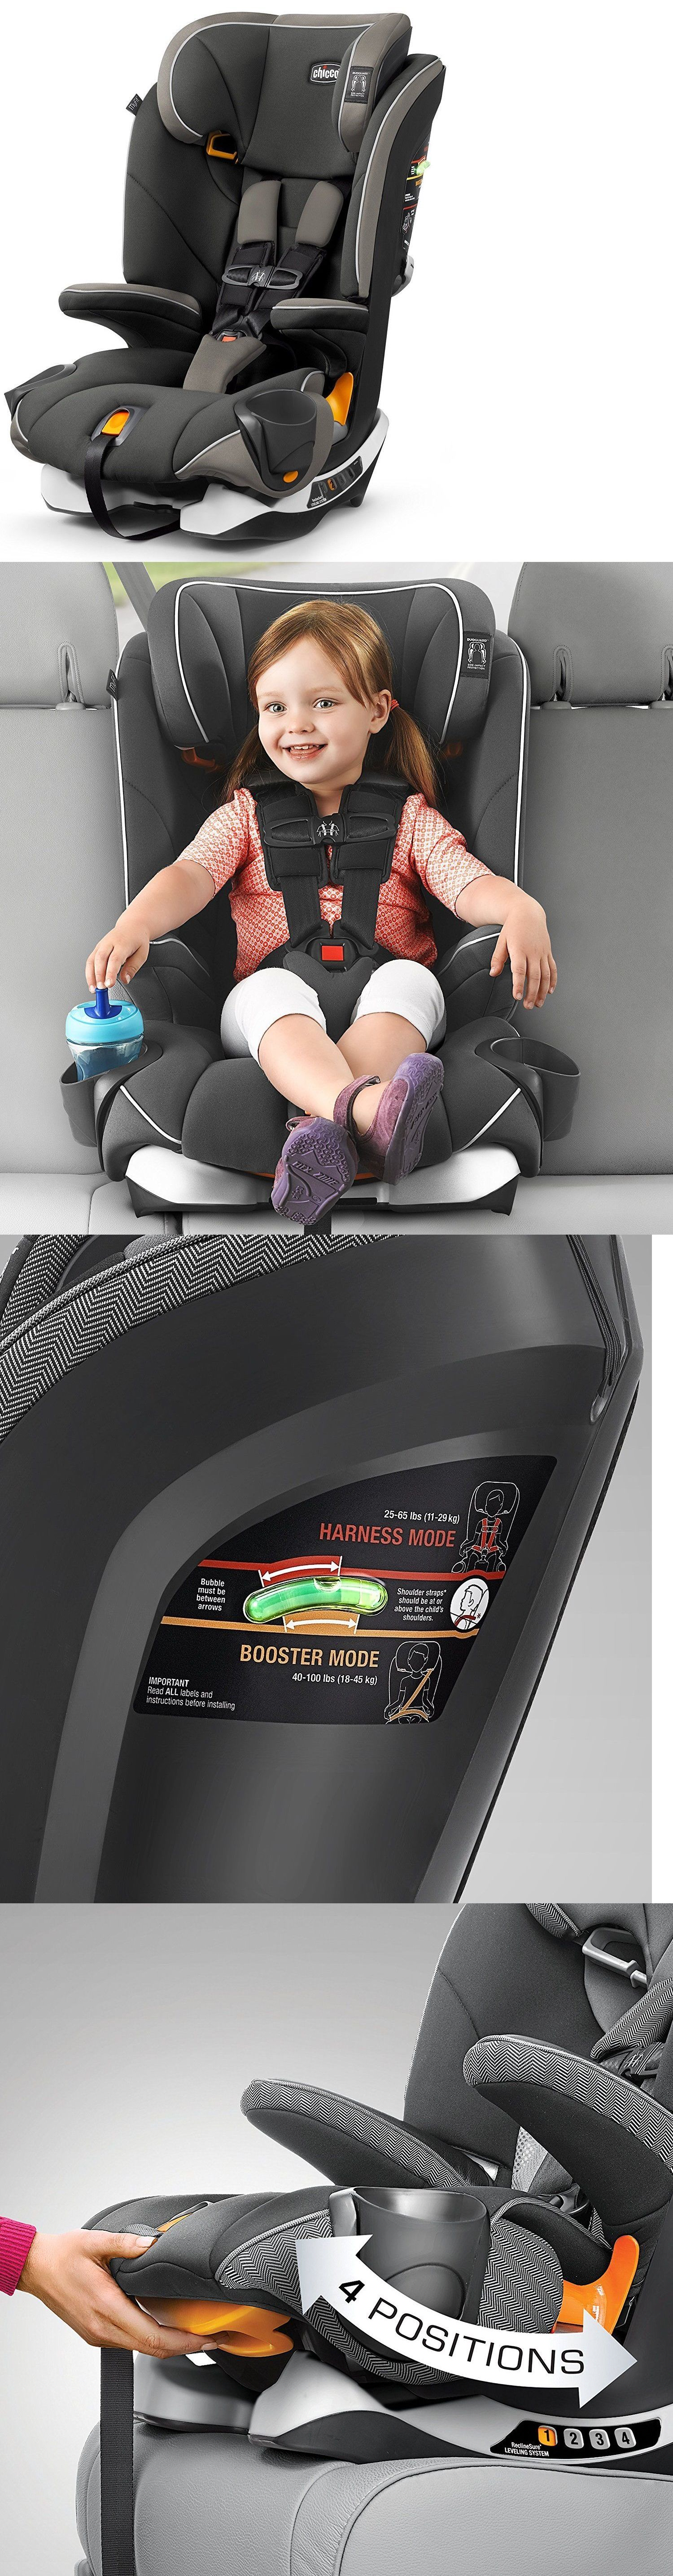 Convertible Car Seat 5 40lbs 66695 Chicco Myfit Harness Booster Child Safety Baby Canyon New BUY IT NOW ONLY 19999 On EBay